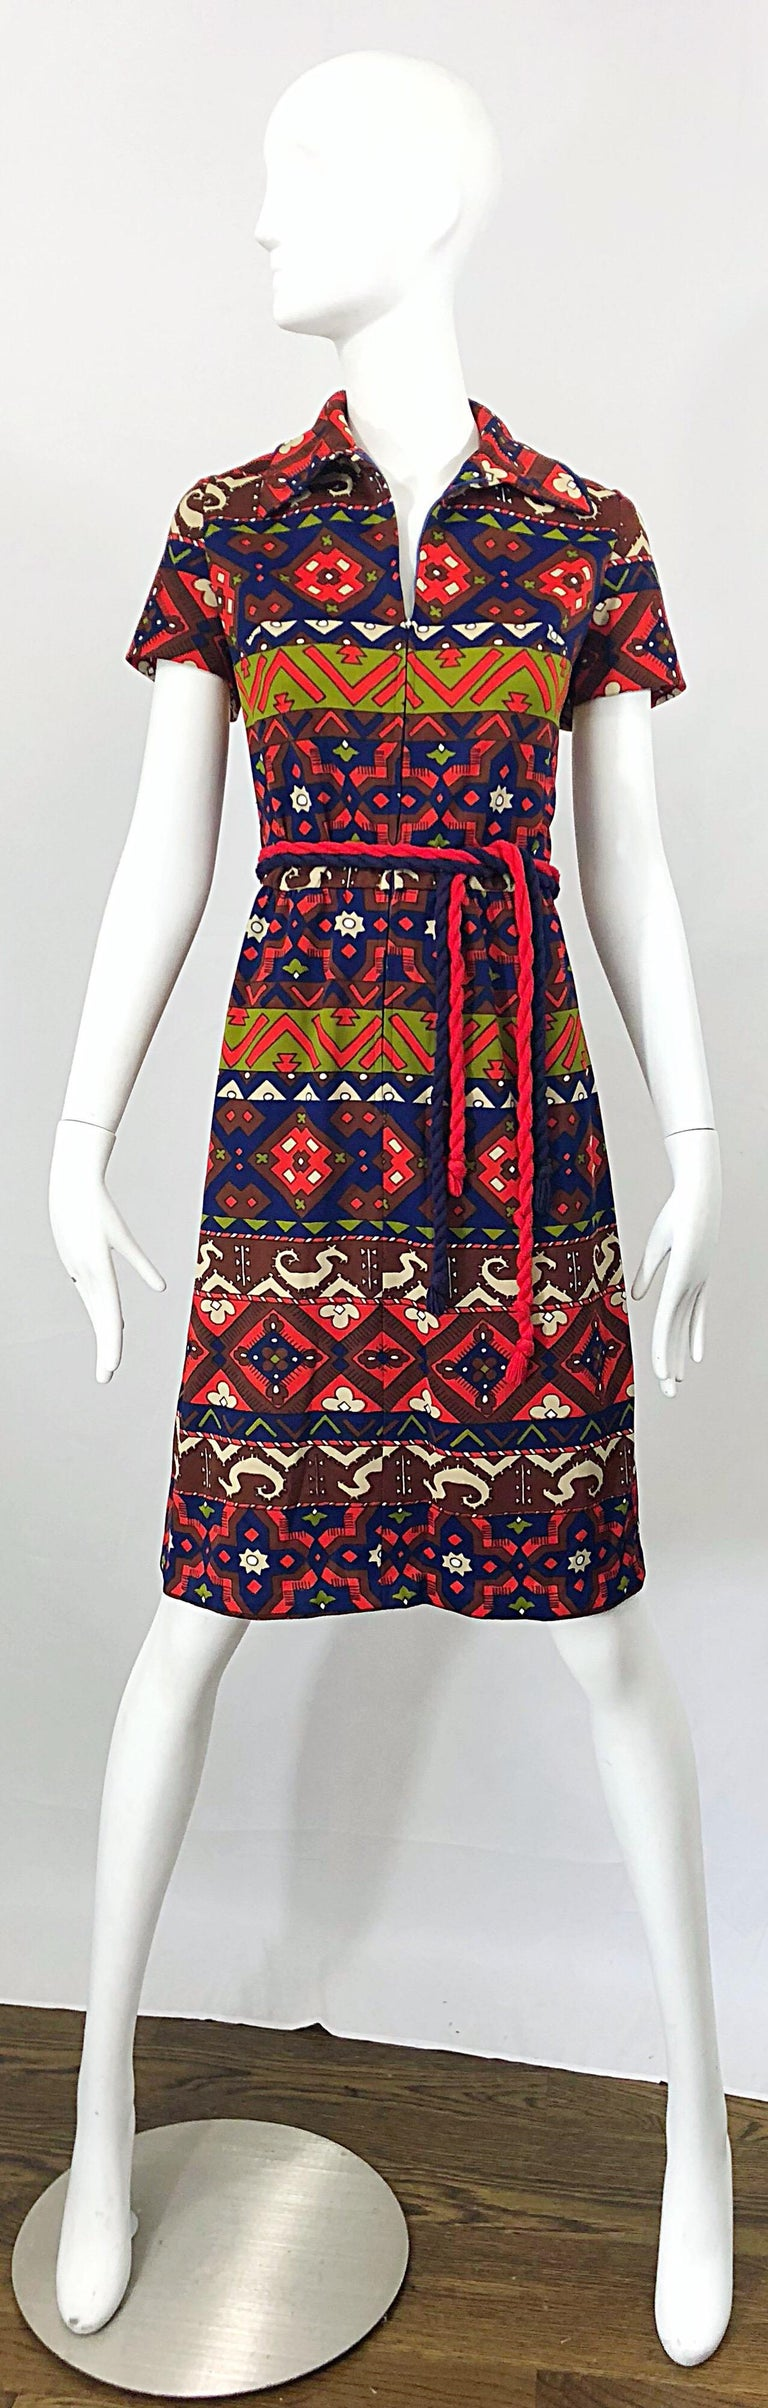 Amazing vintage Aztec inspired 1970s knit belted shirt dress! Features warm tones of red, chartreuse green, navy blue and maroon throughout. Zips up the front to control cleavage. Two tassel belts in red and navy. Great with heels, sandals, wedges,